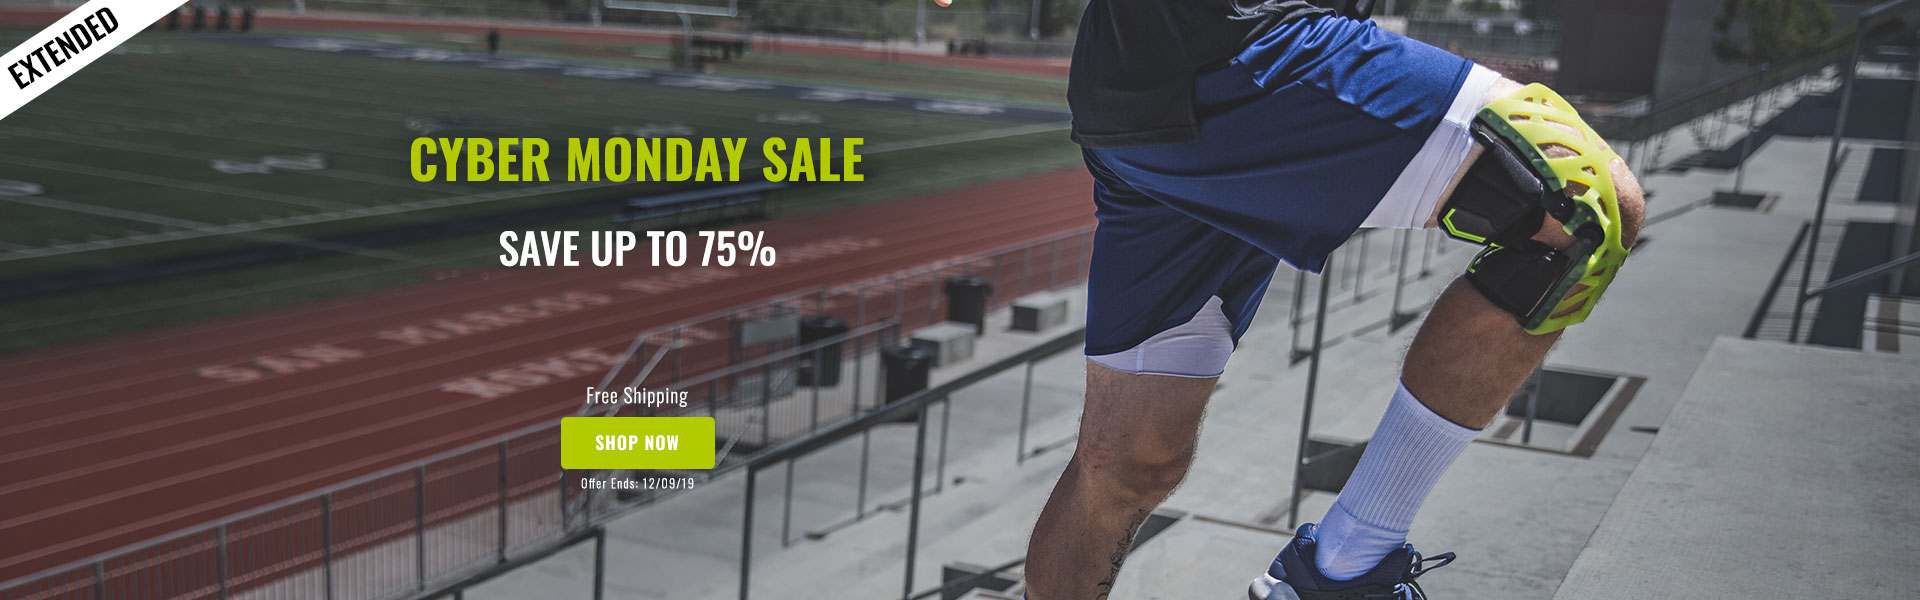 Cyber Monday Sale - Save up to 75%